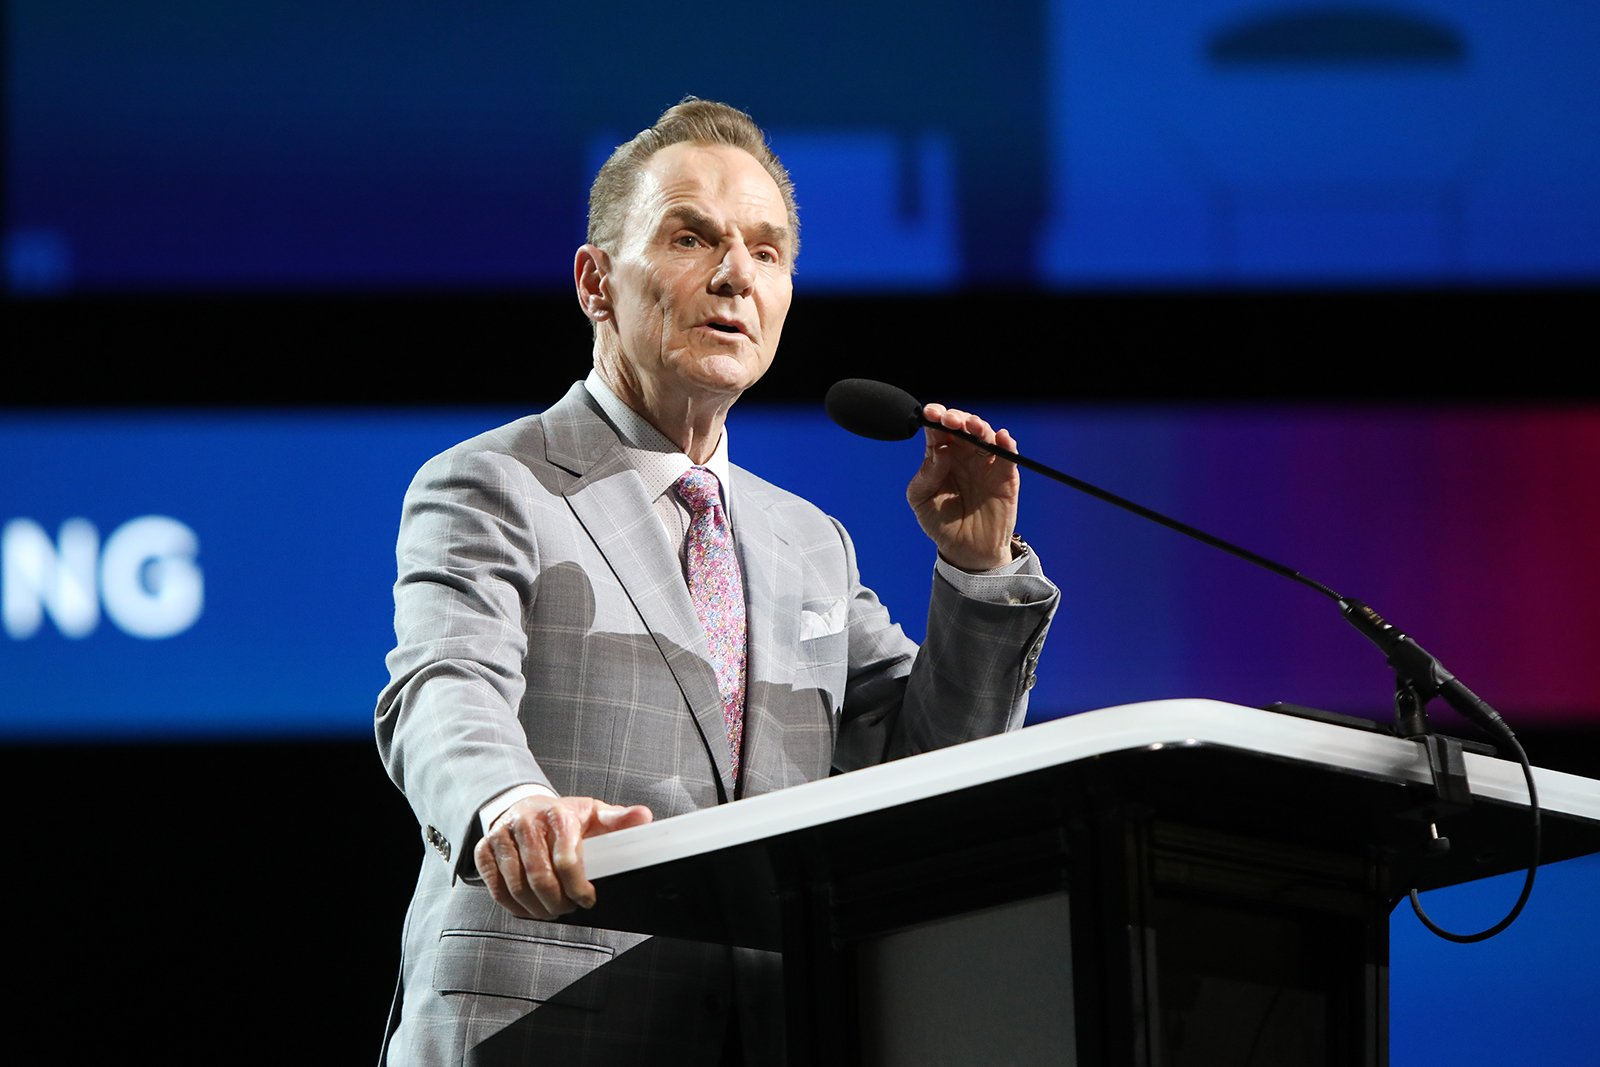 Ronnie Floyd, Head of Southern Baptist Executive Committee, Questions Messengers' Resolution in Sex Abuse Investigation